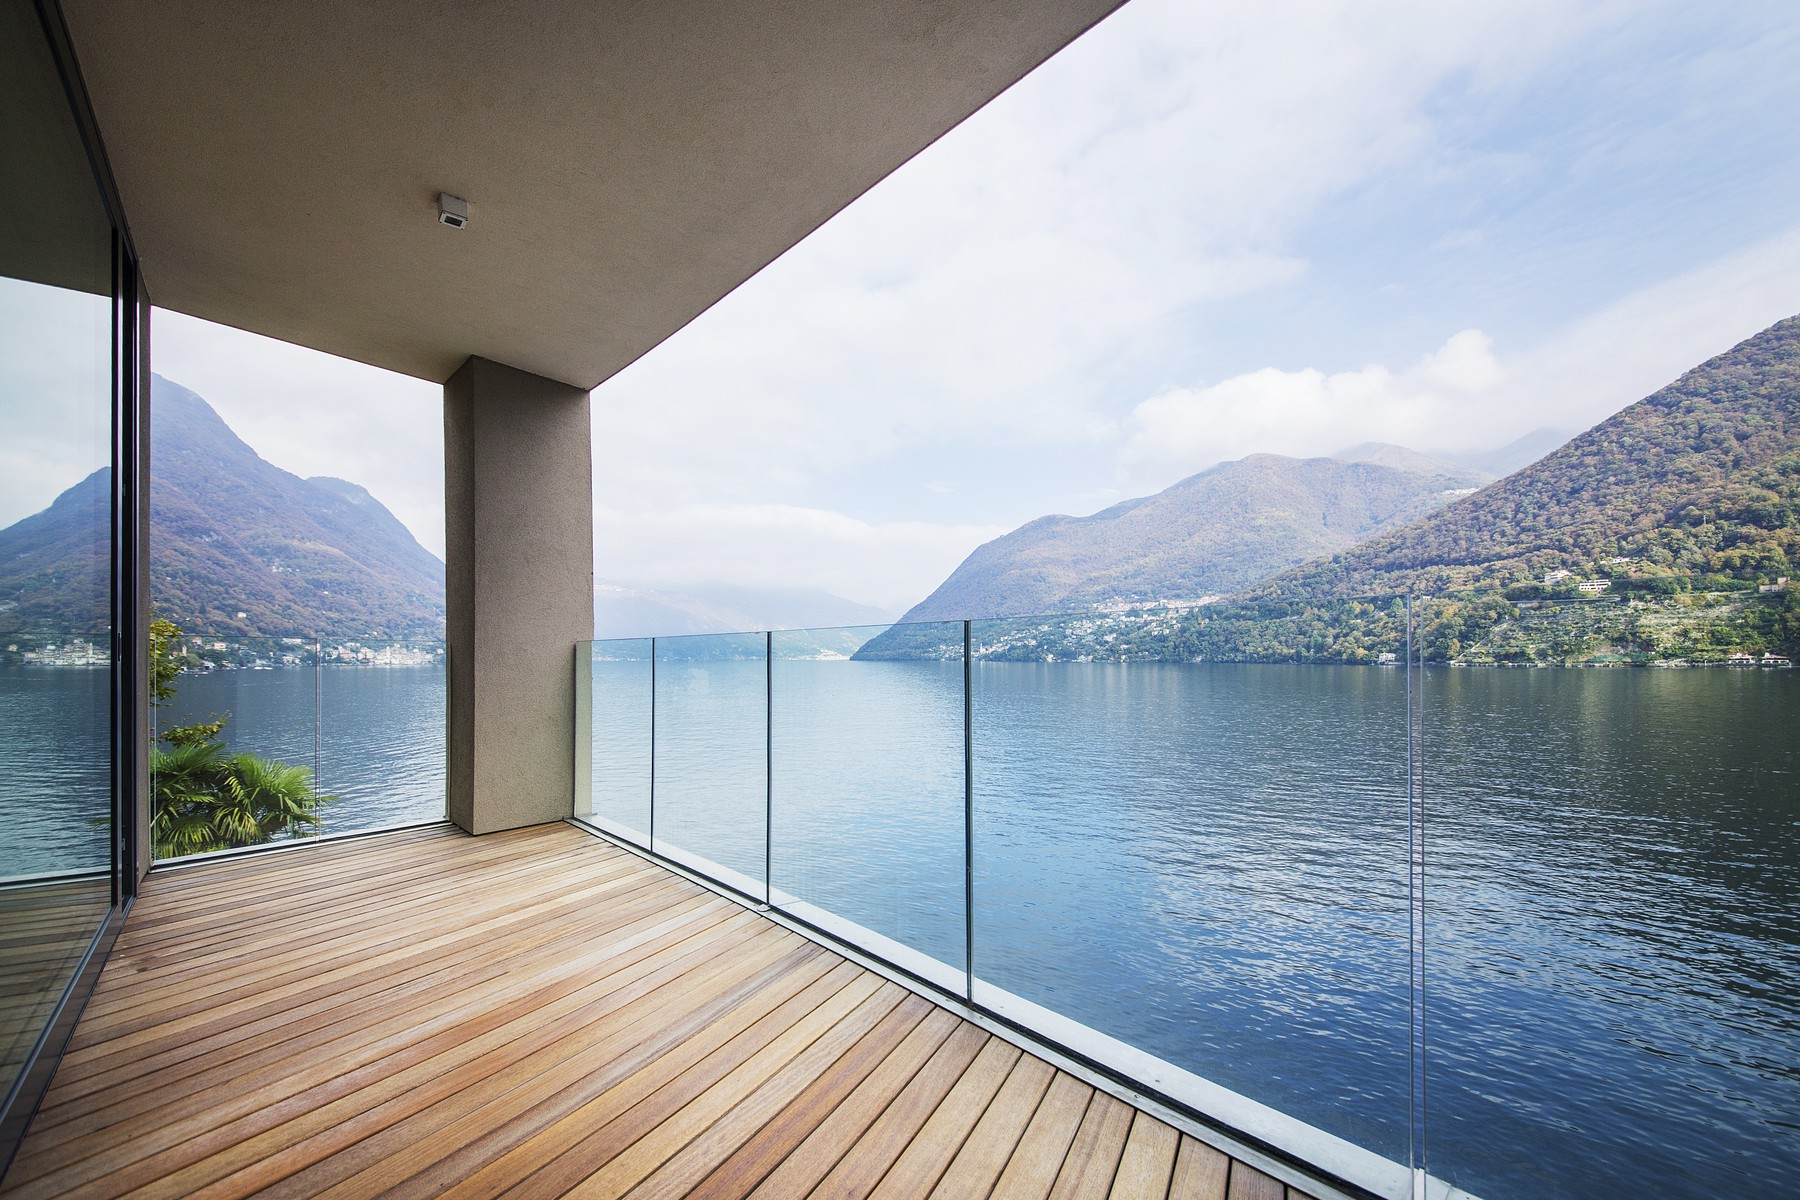 Apartamento por un Venta en Wonderful apartment in new building on Lake Como Via Nuova Regina Laglio, Como 22010 Italia